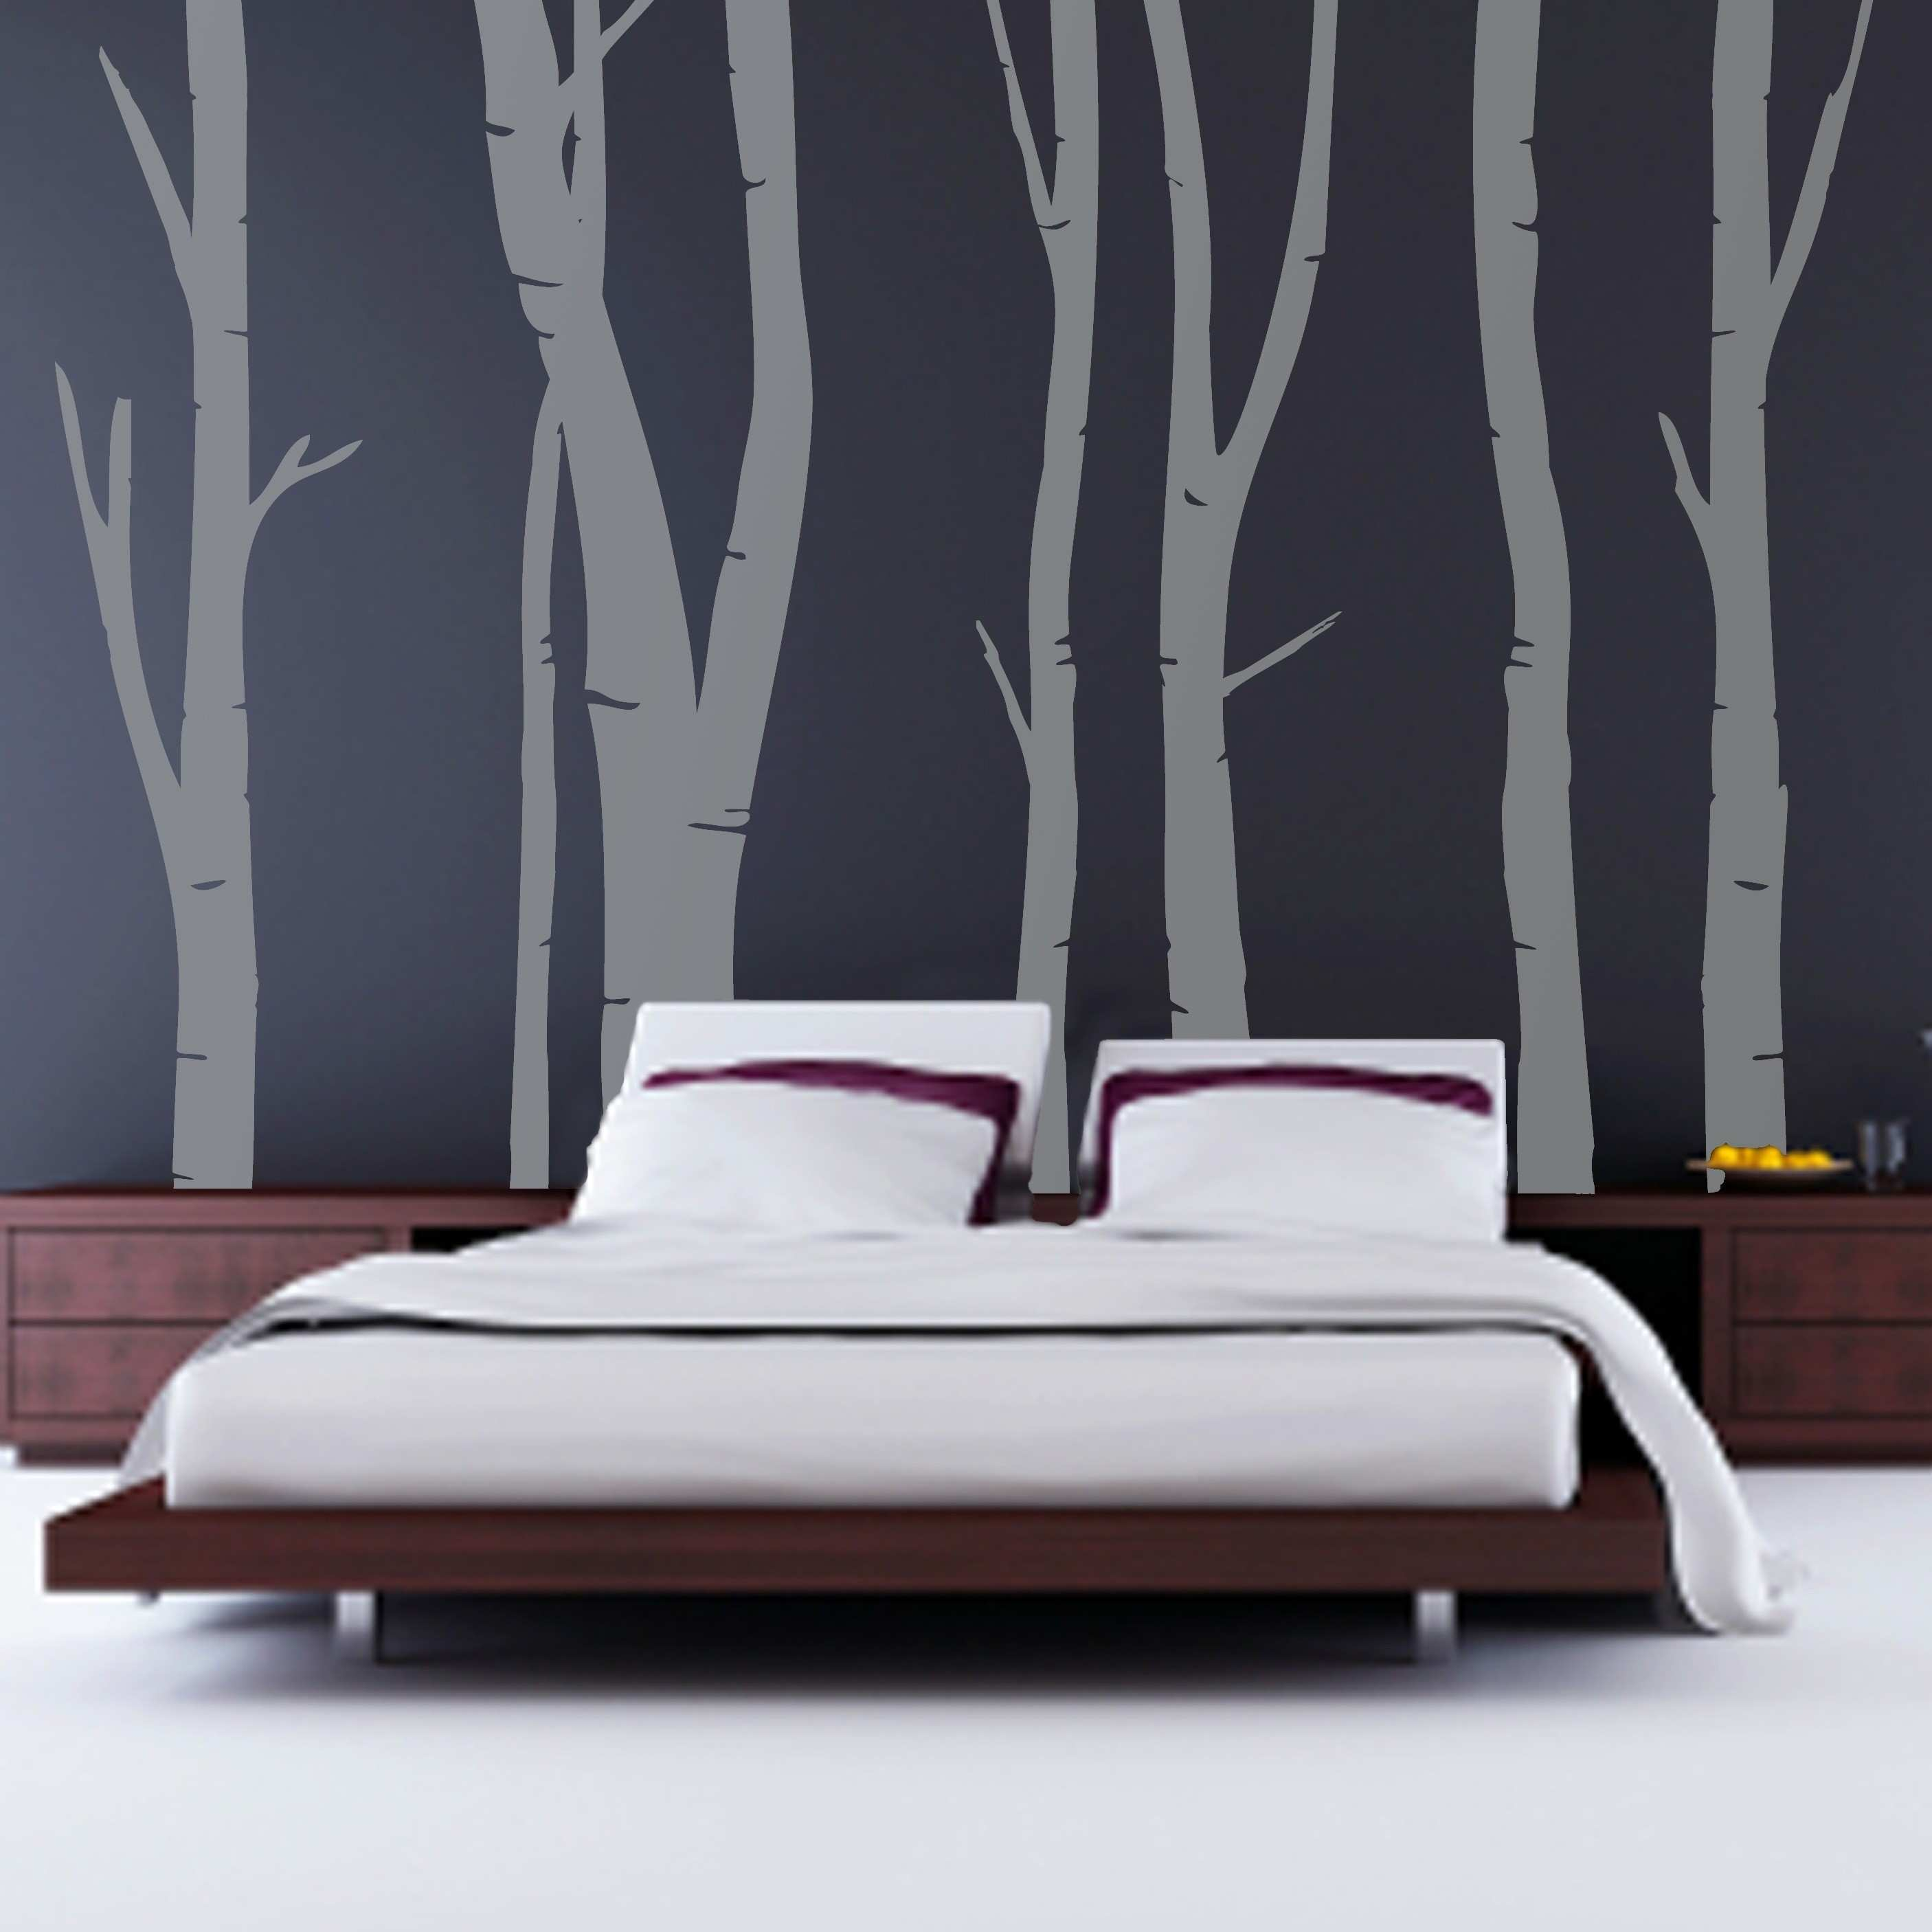 Best Mountain Decals for Walls